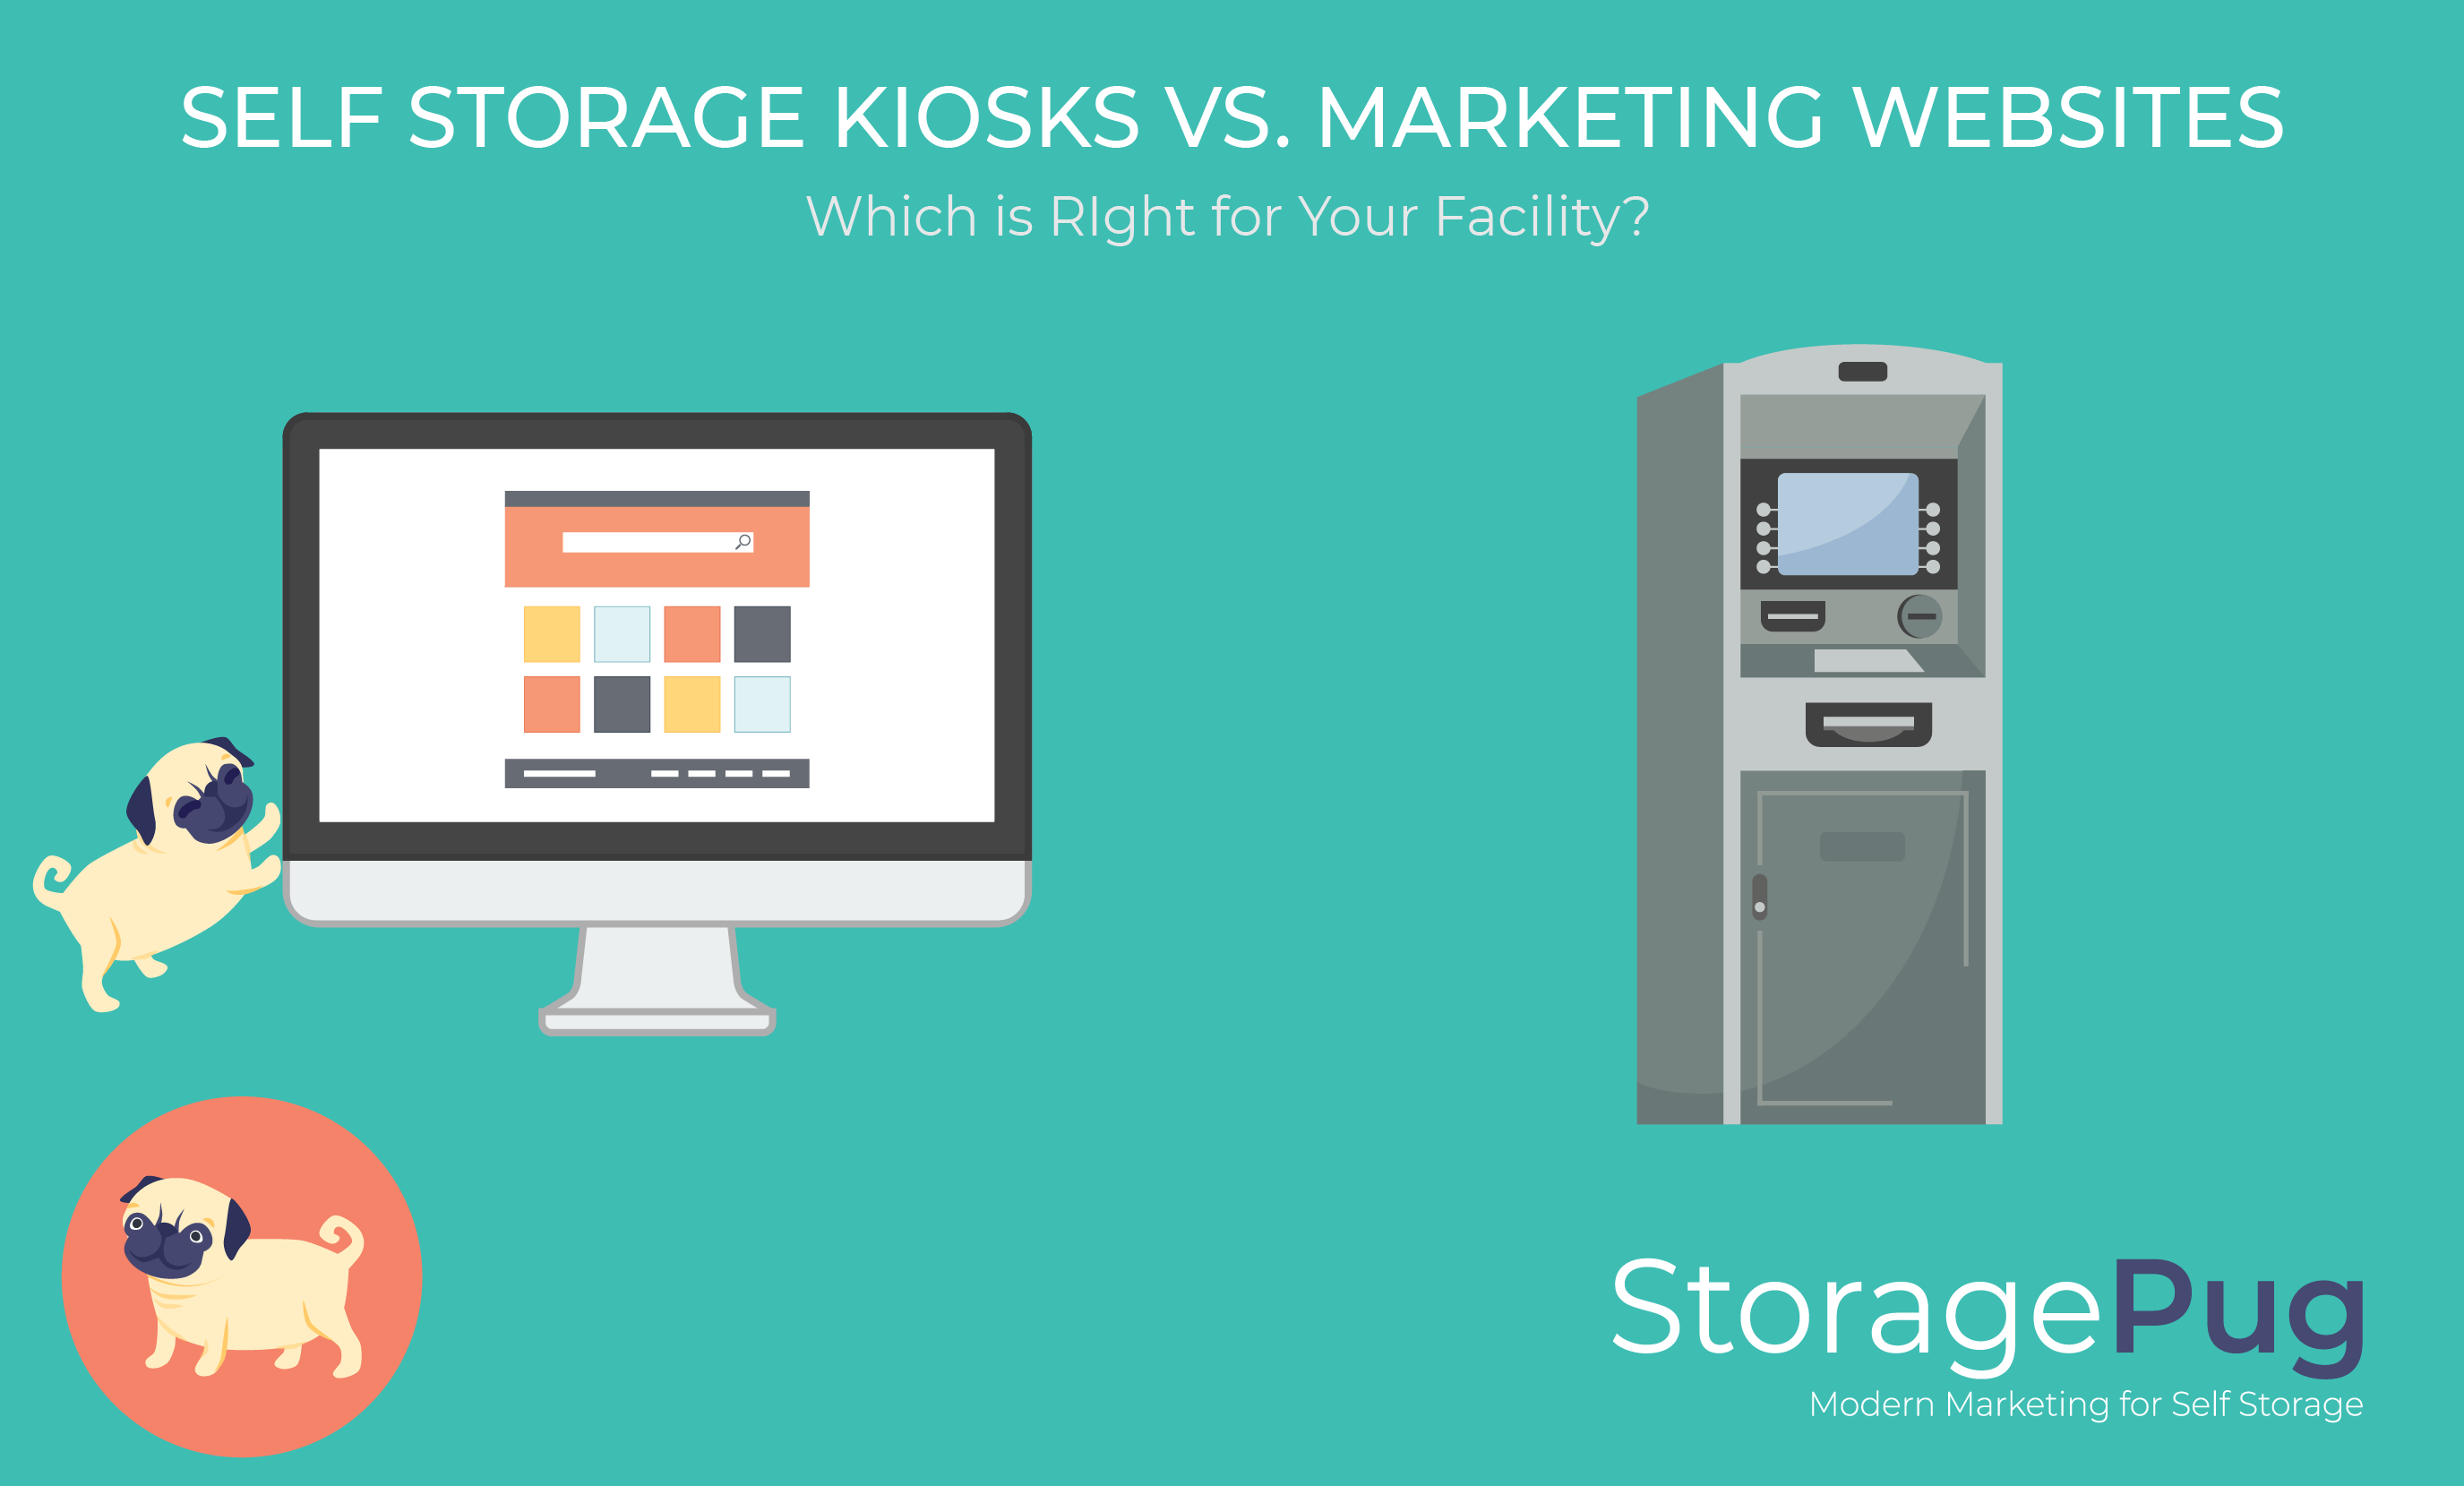 Self Storage Kiosk vs Marketing Website@5x